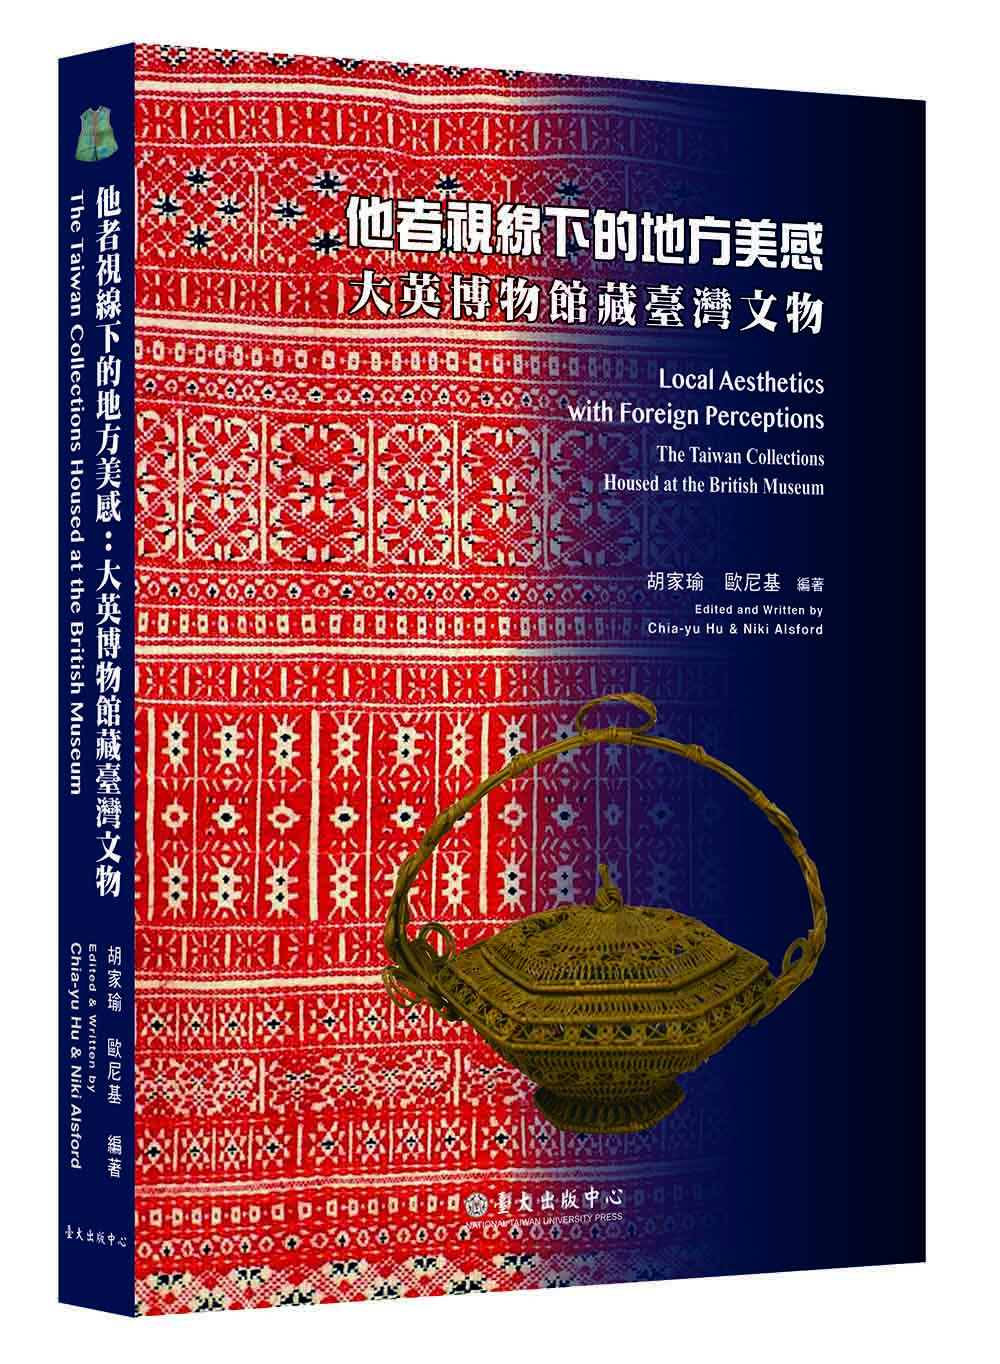 Local Aesthetics with Foreign Perceptions: The Taiwan Collections Housed at the British Museum